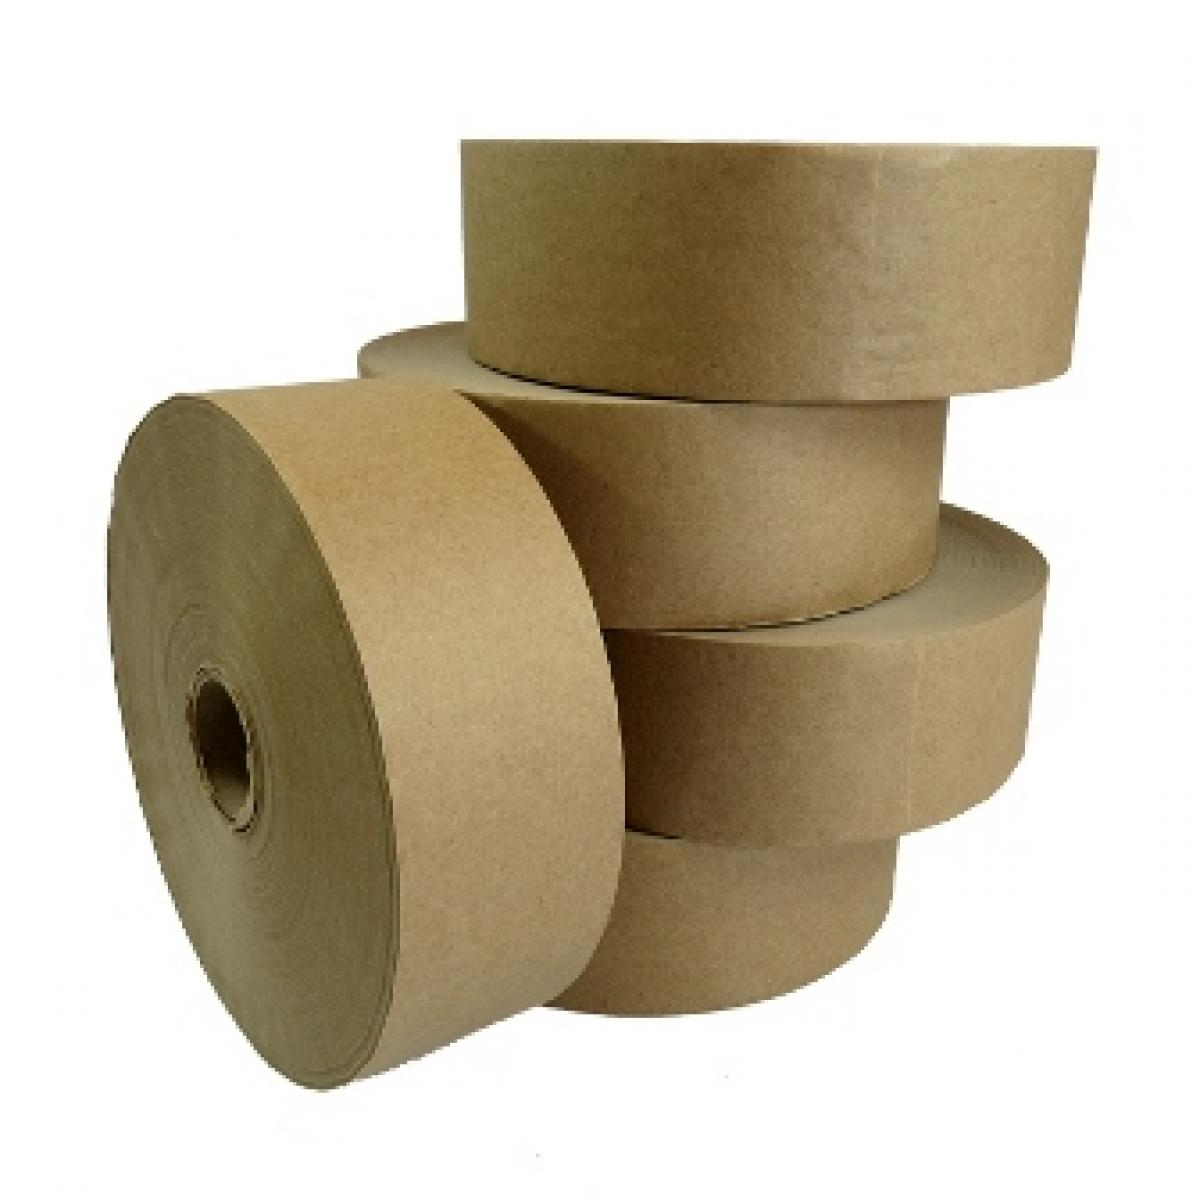 12 Rolls Buff Brown EXTRA STRONG Parcel Carton Tape Packing Packaging 48mm x 66m